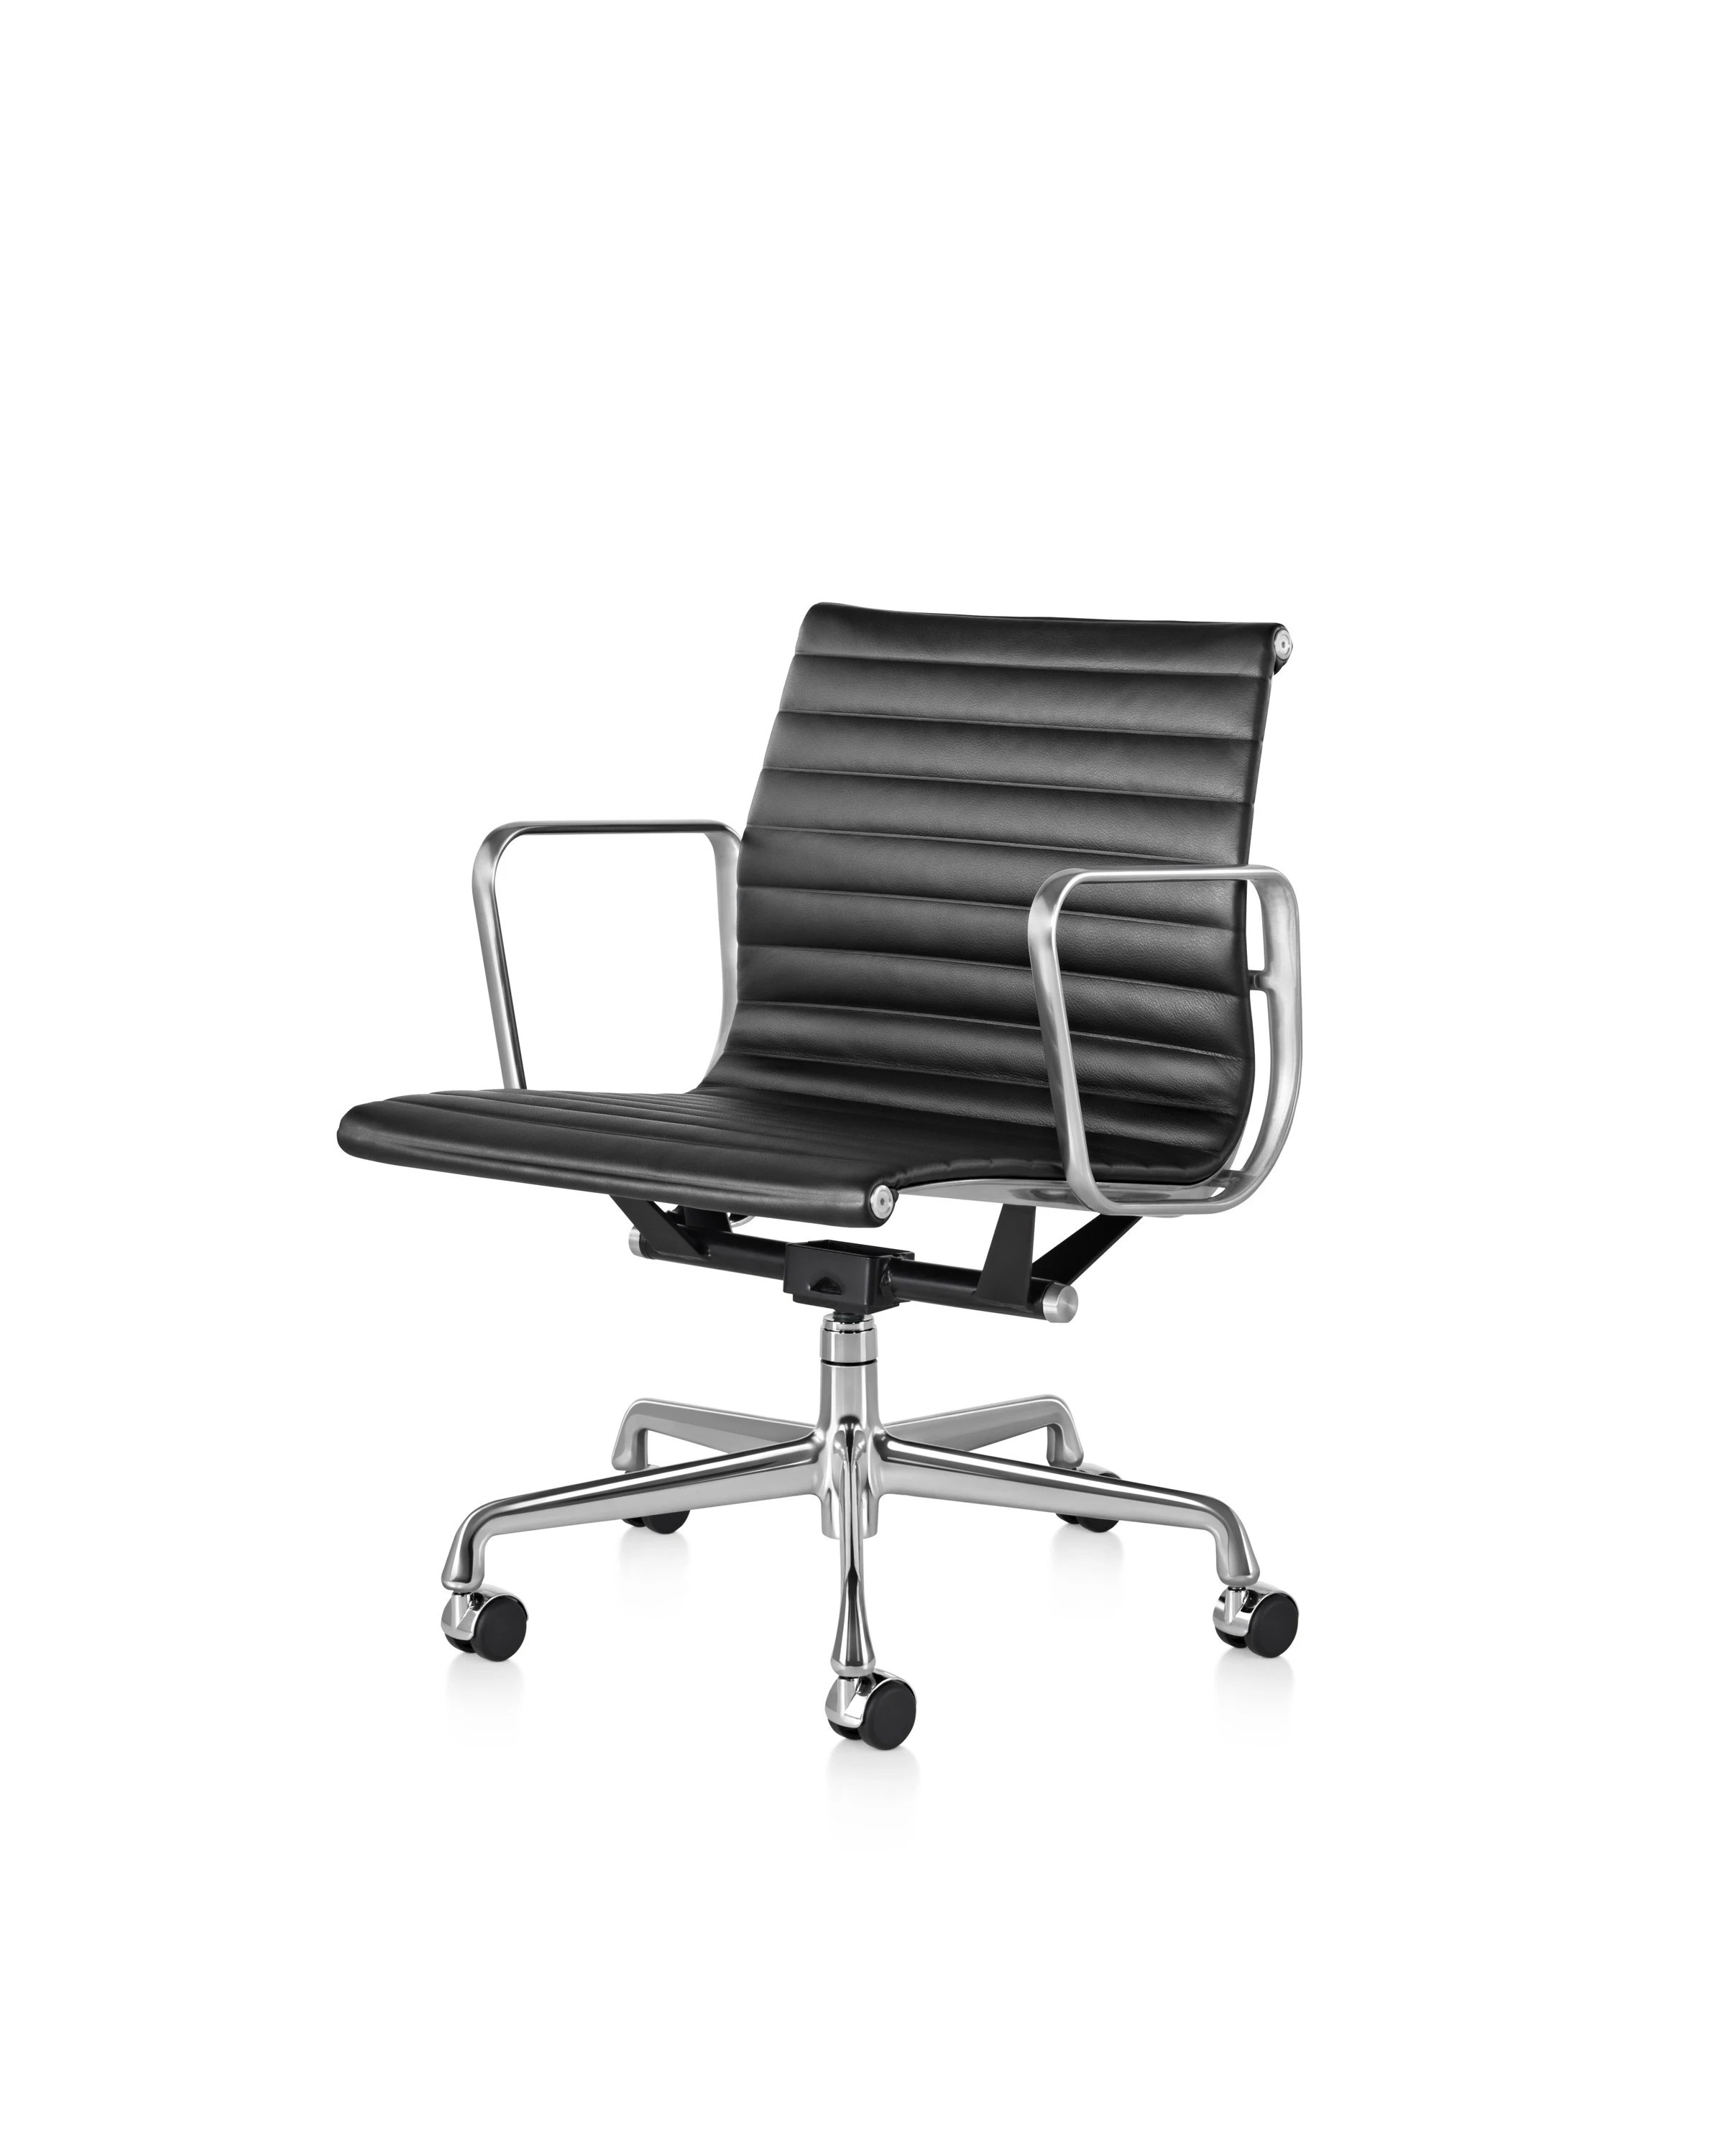 Herman Miller Eames Chairs Herman Miller Eames Aluminum Group Management Chair